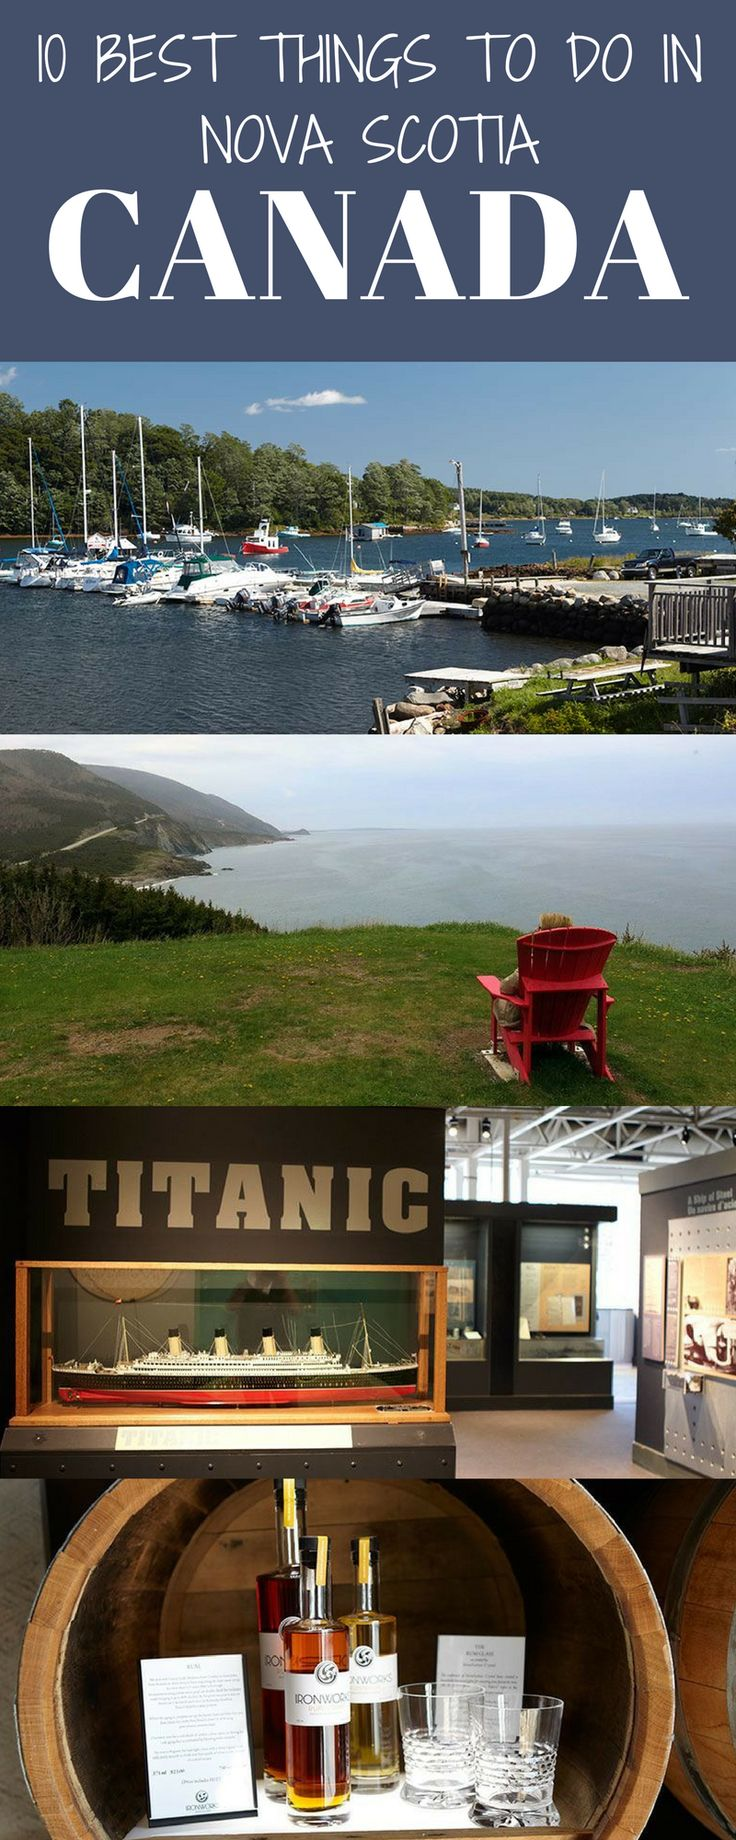 10 things to do in Nova Scotia.  Cape Breton and the Cabot Trail is rightly praised as one of the great drives on the planet.